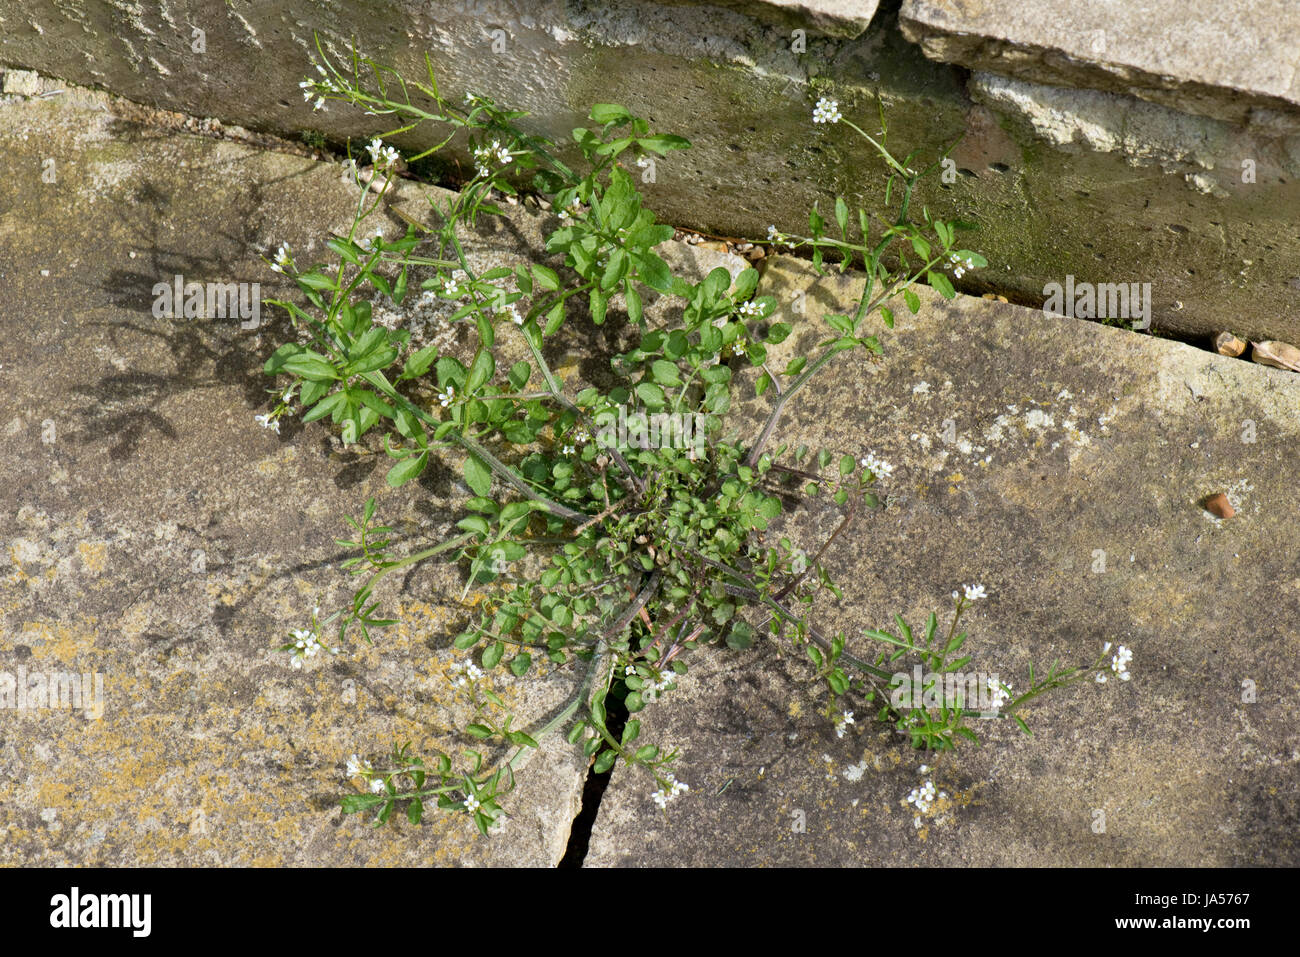 Hairy bittercress, Cardamine hirsuta, growing between paving slabs and flowering and seeding, Berkshire, April Stock Photo